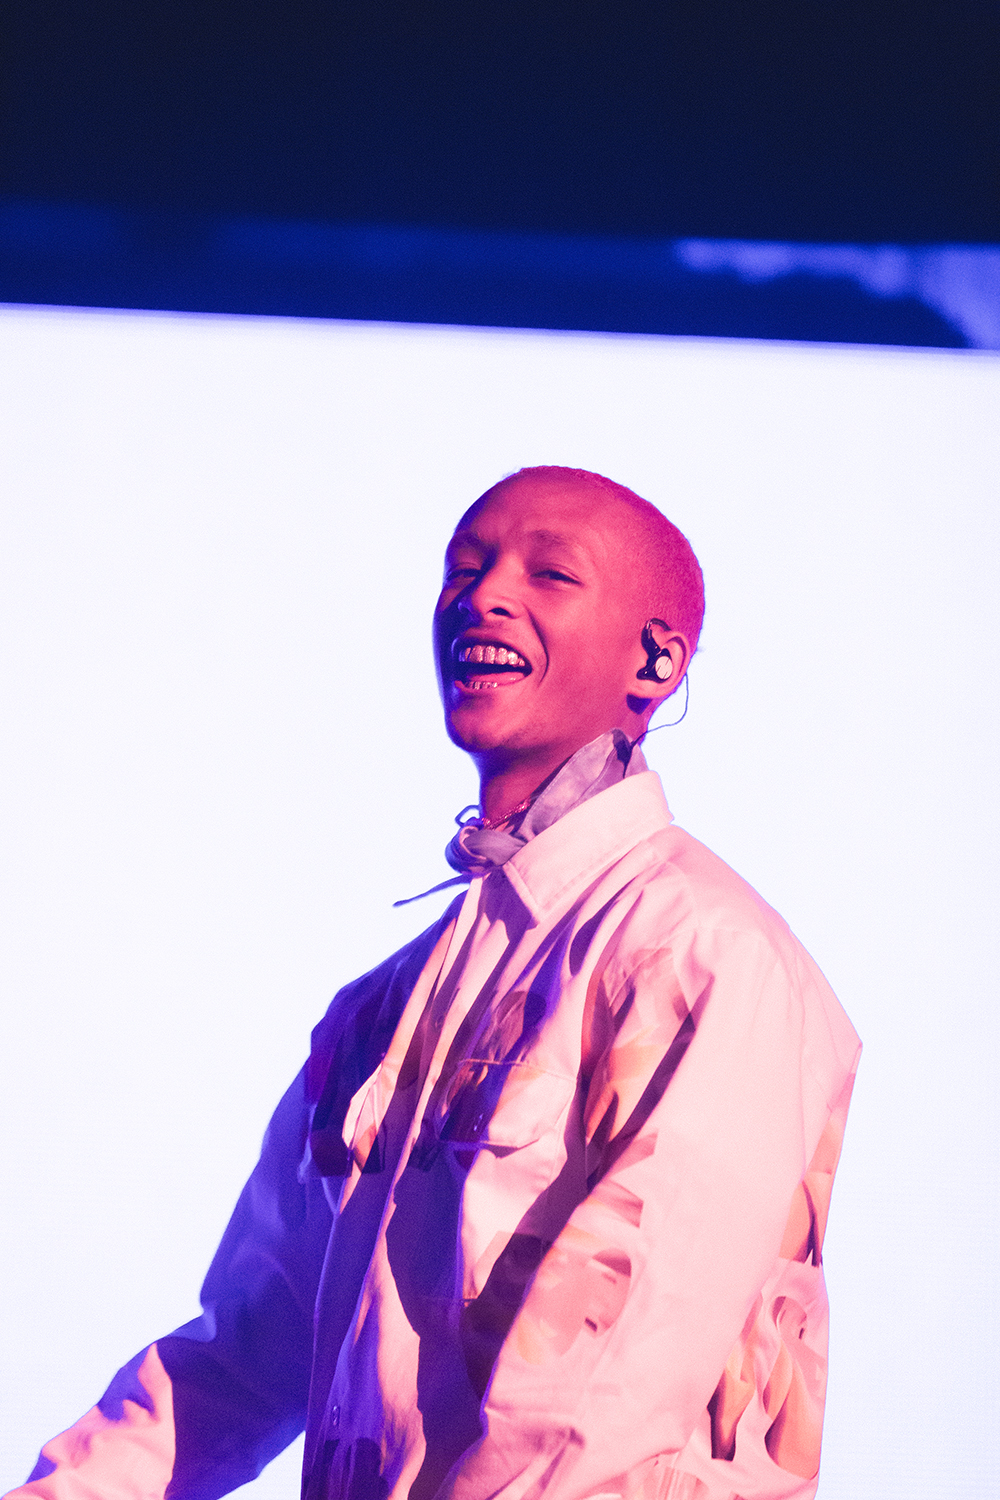 Jaden+had+the+crowd+light+the+arena+with+their+phones+as+he+performed+%22Summertime+in+Paris.%22